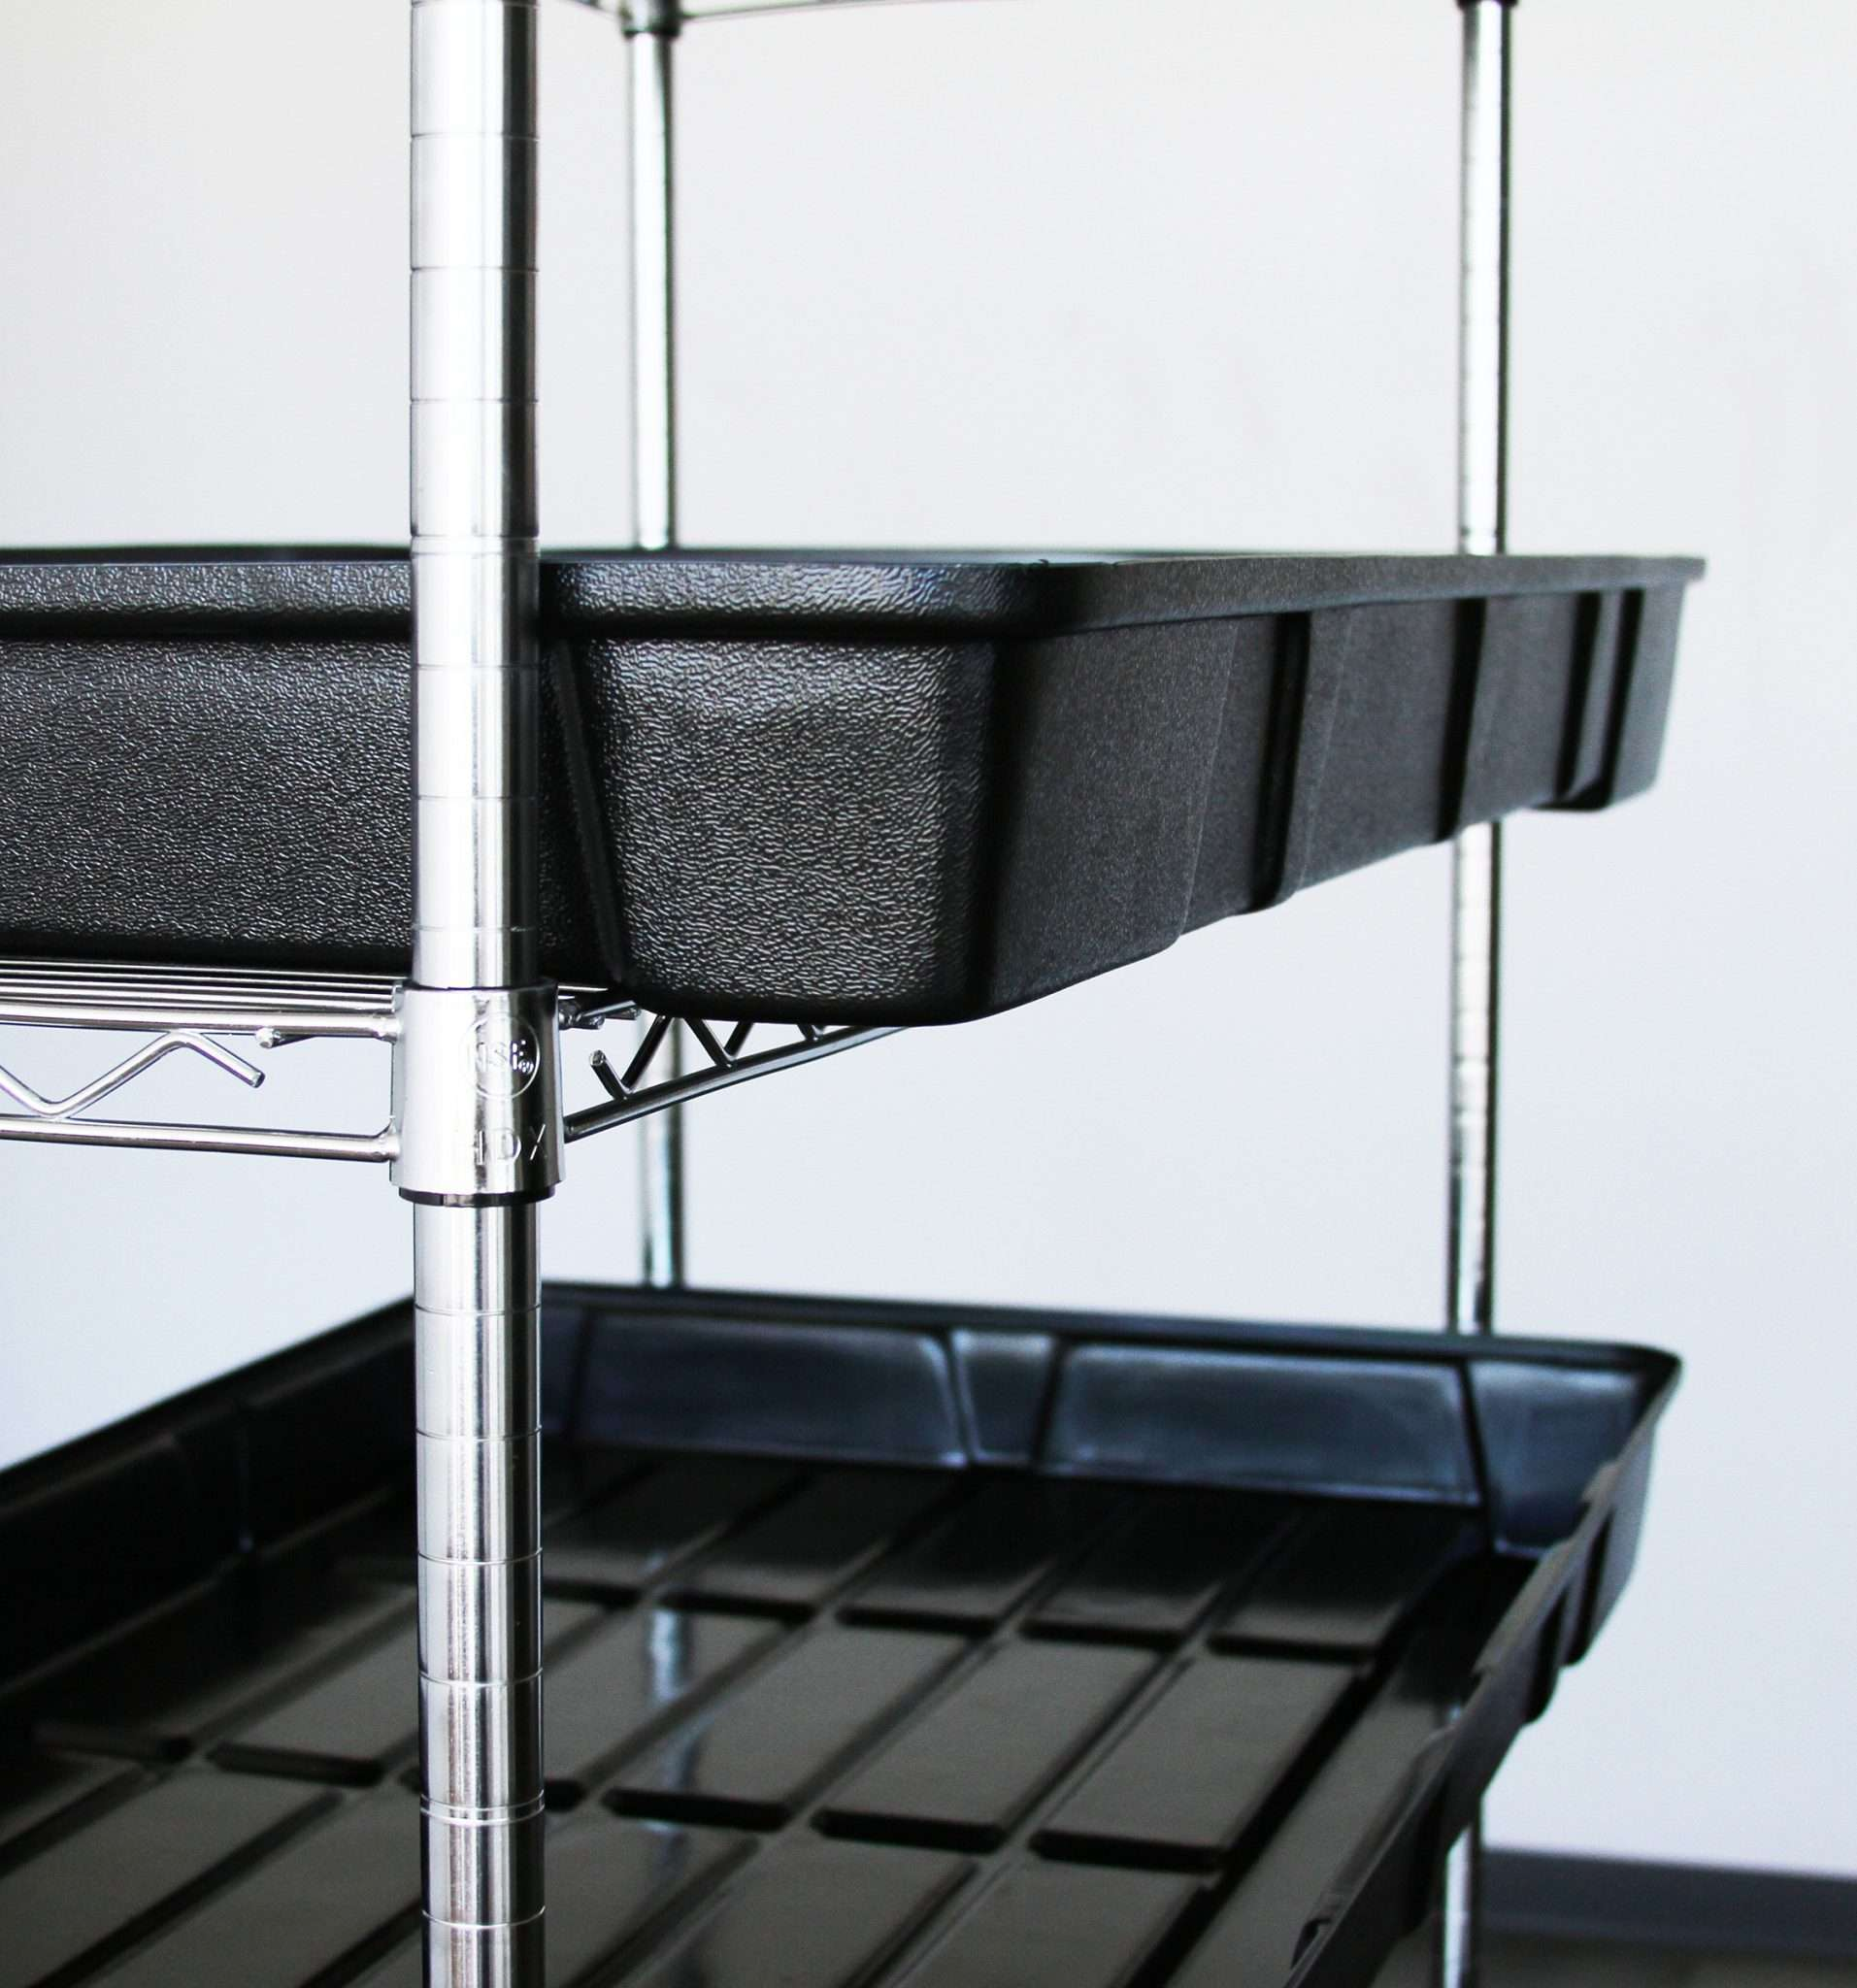 Water Tray on a rack